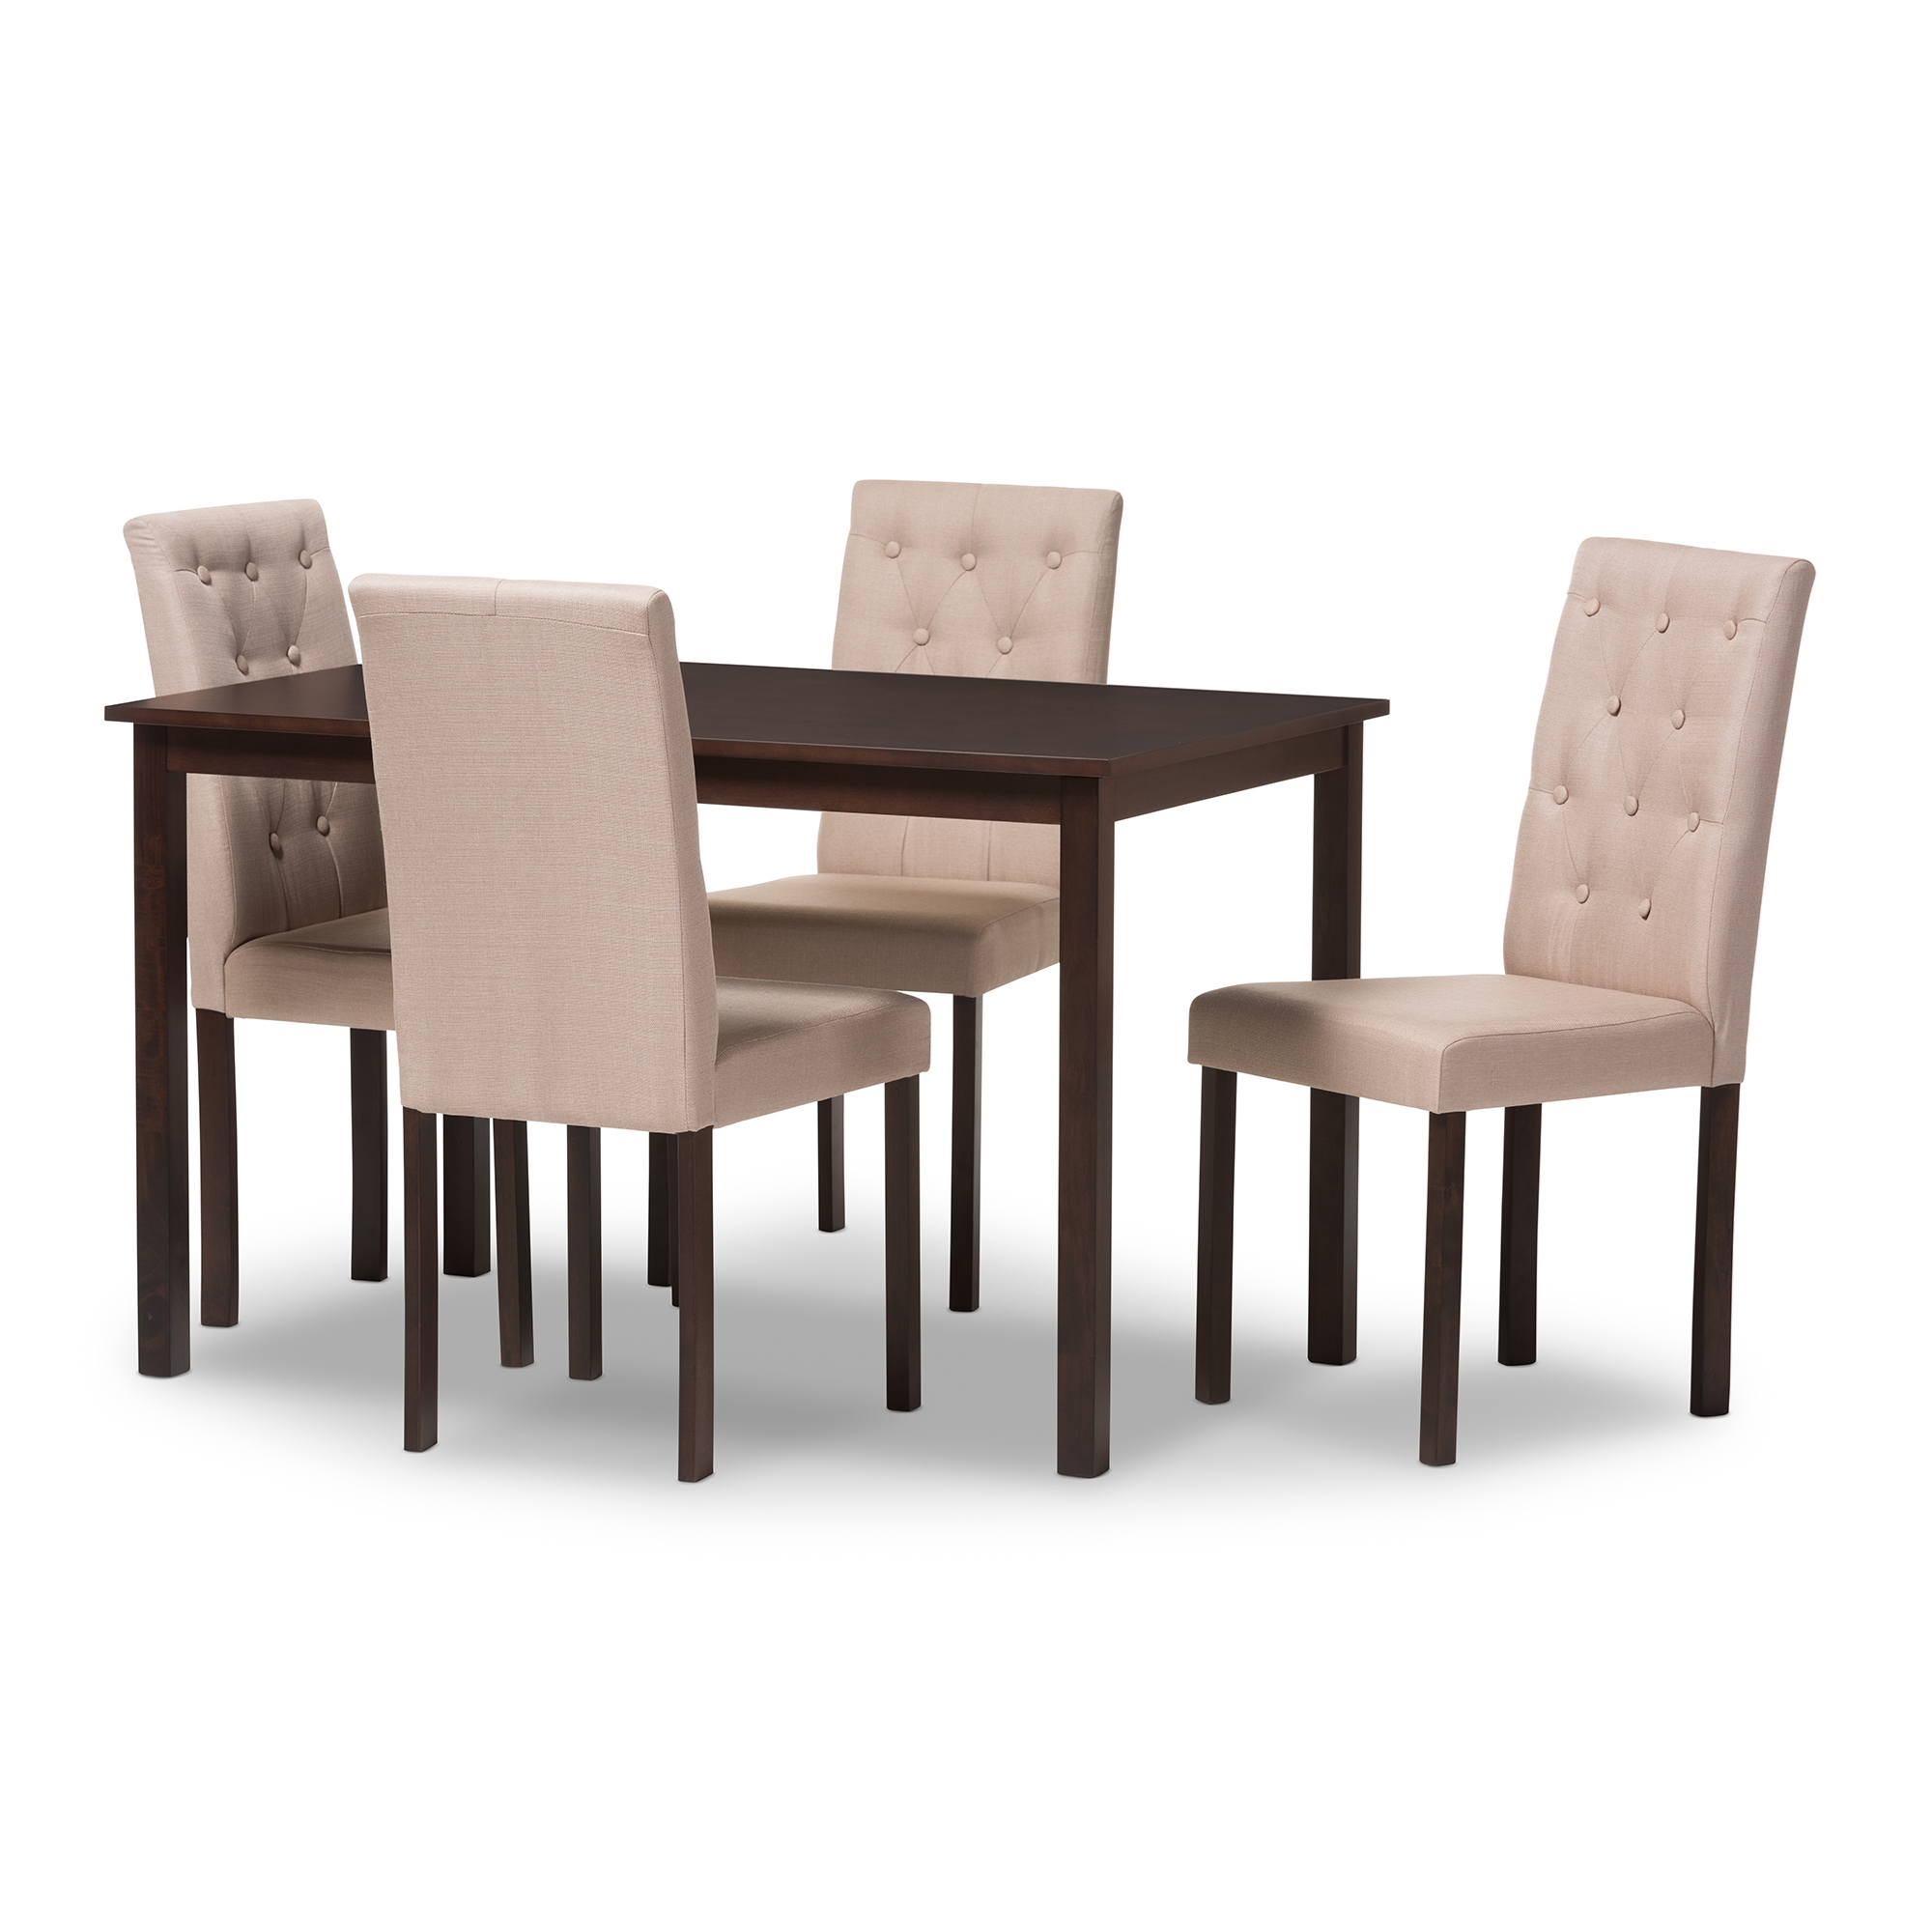 Baxton Studio Gardner Modern And Contemporary 5 Piece Dark Brown Finished  Beige Fabric Upholstered Dining